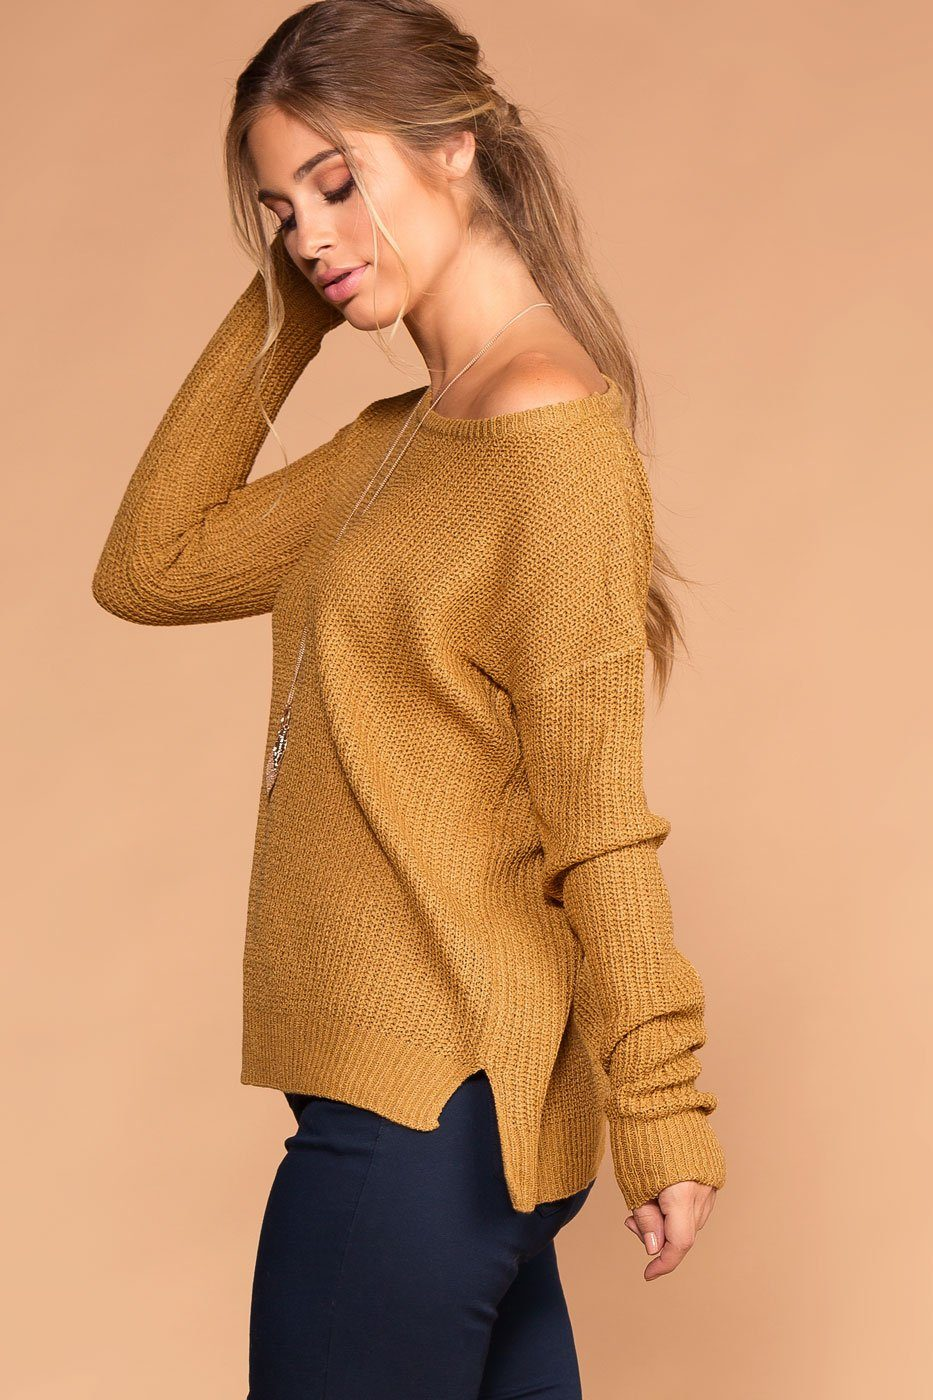 Women's Mustard Knit Sweater Top